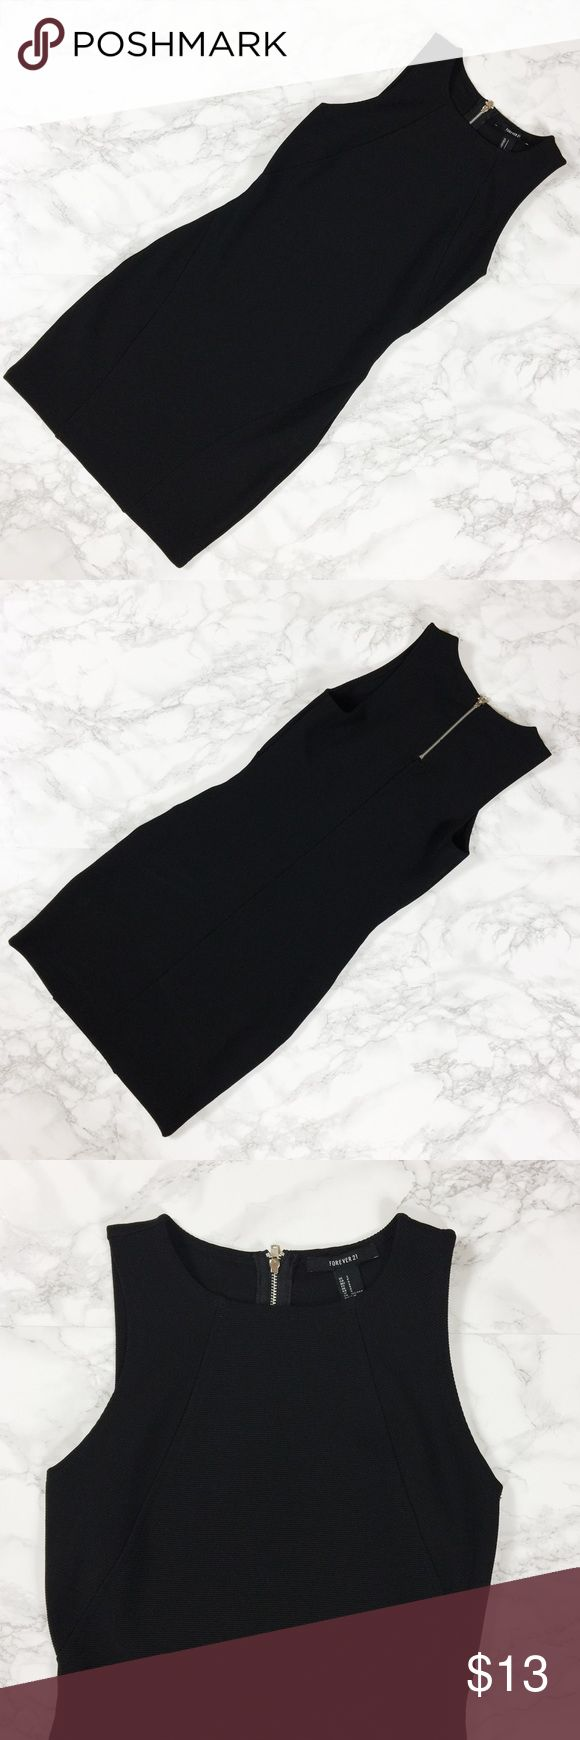 Forever 21 Ribbed Bodycon Dress Black bodycon dress with ribbed fabric. Exposed silver zipper. Only worn once. Forever 21 Dresses